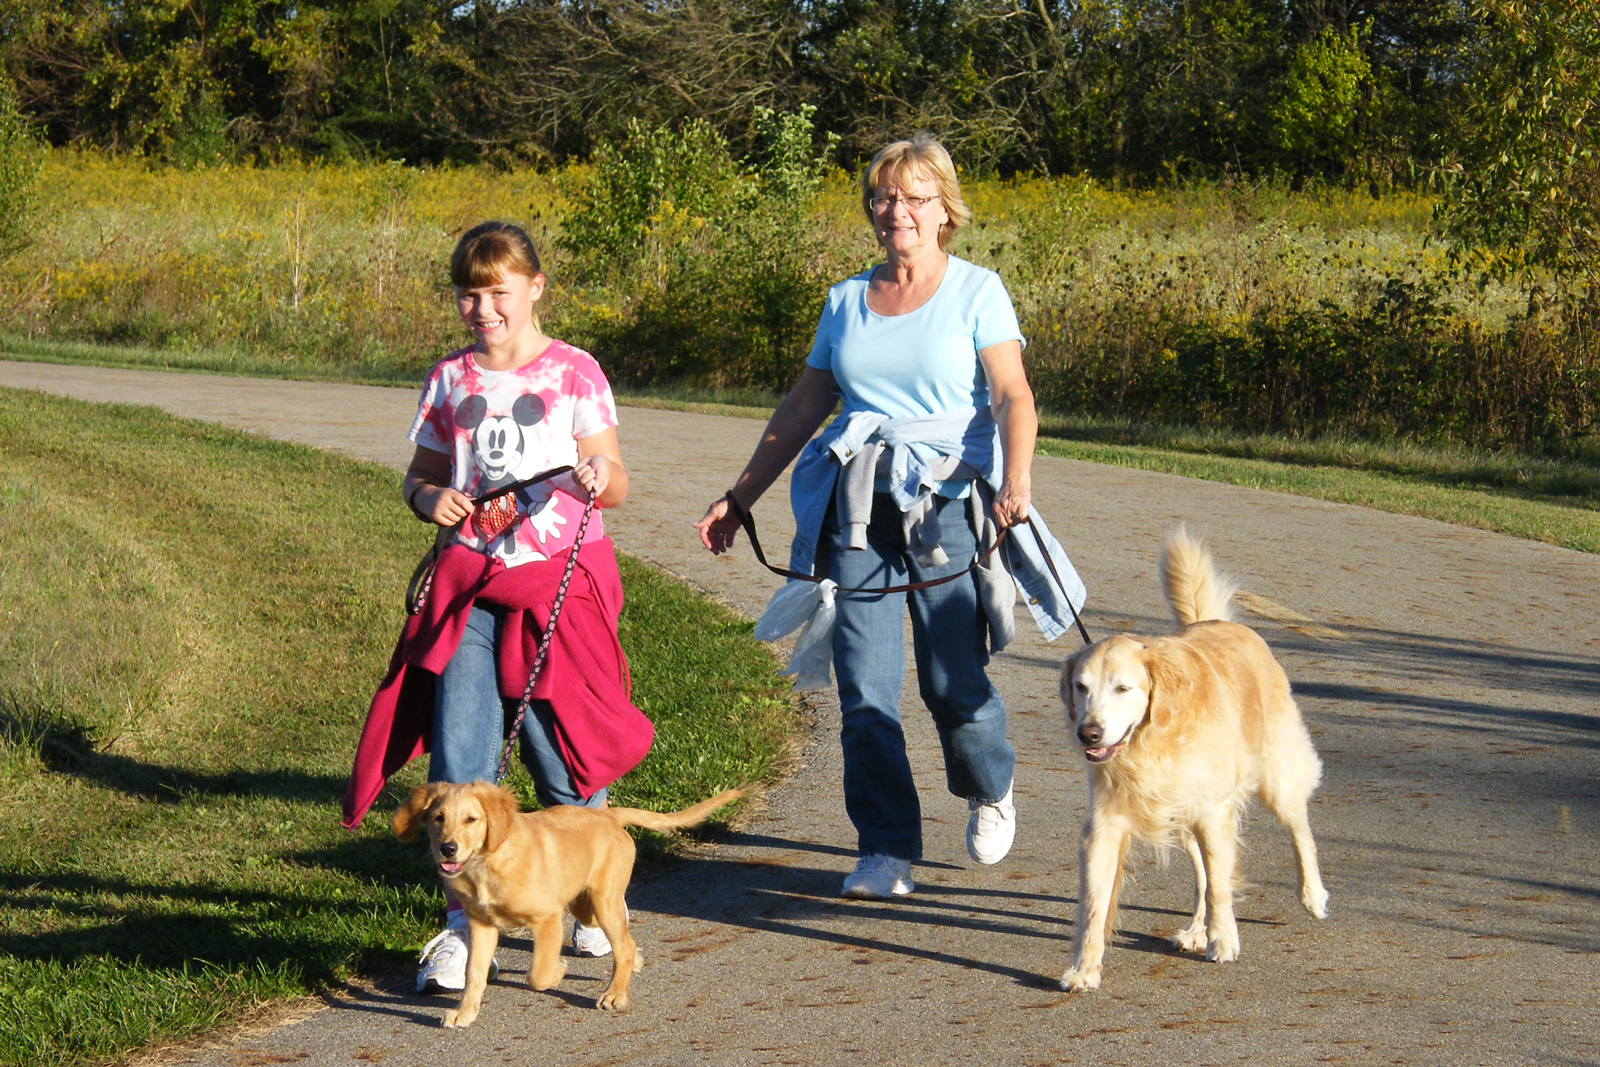 Walkers with their dogs on the Blacklick Creek Greenway Trail at Pickerington Ponds.